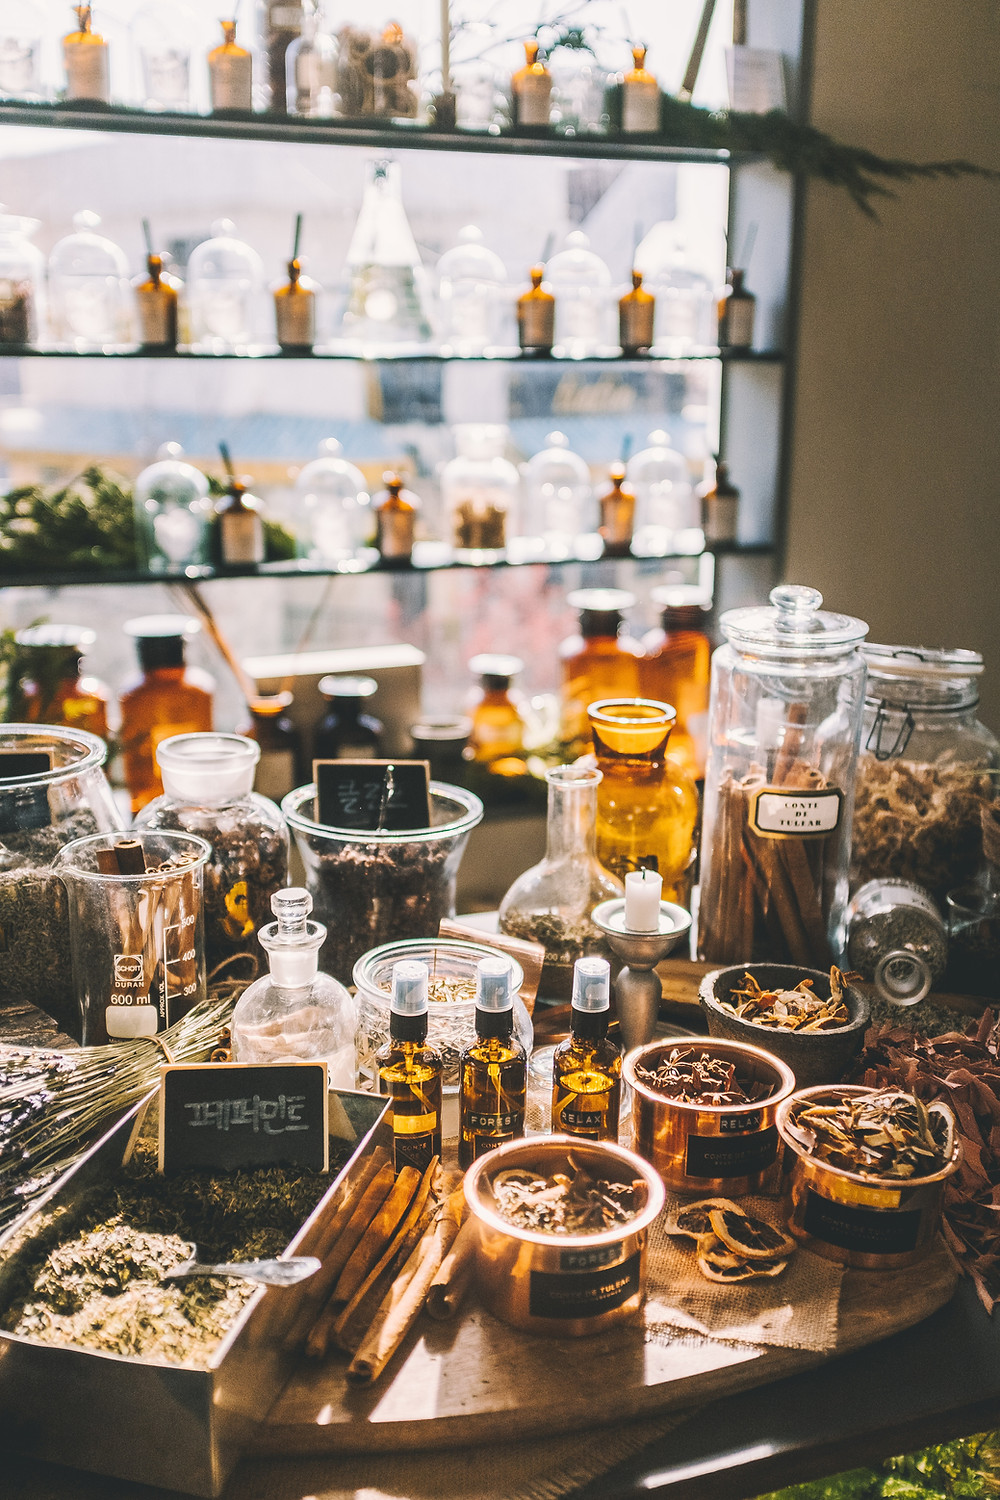 apothecary, herbalist's shop